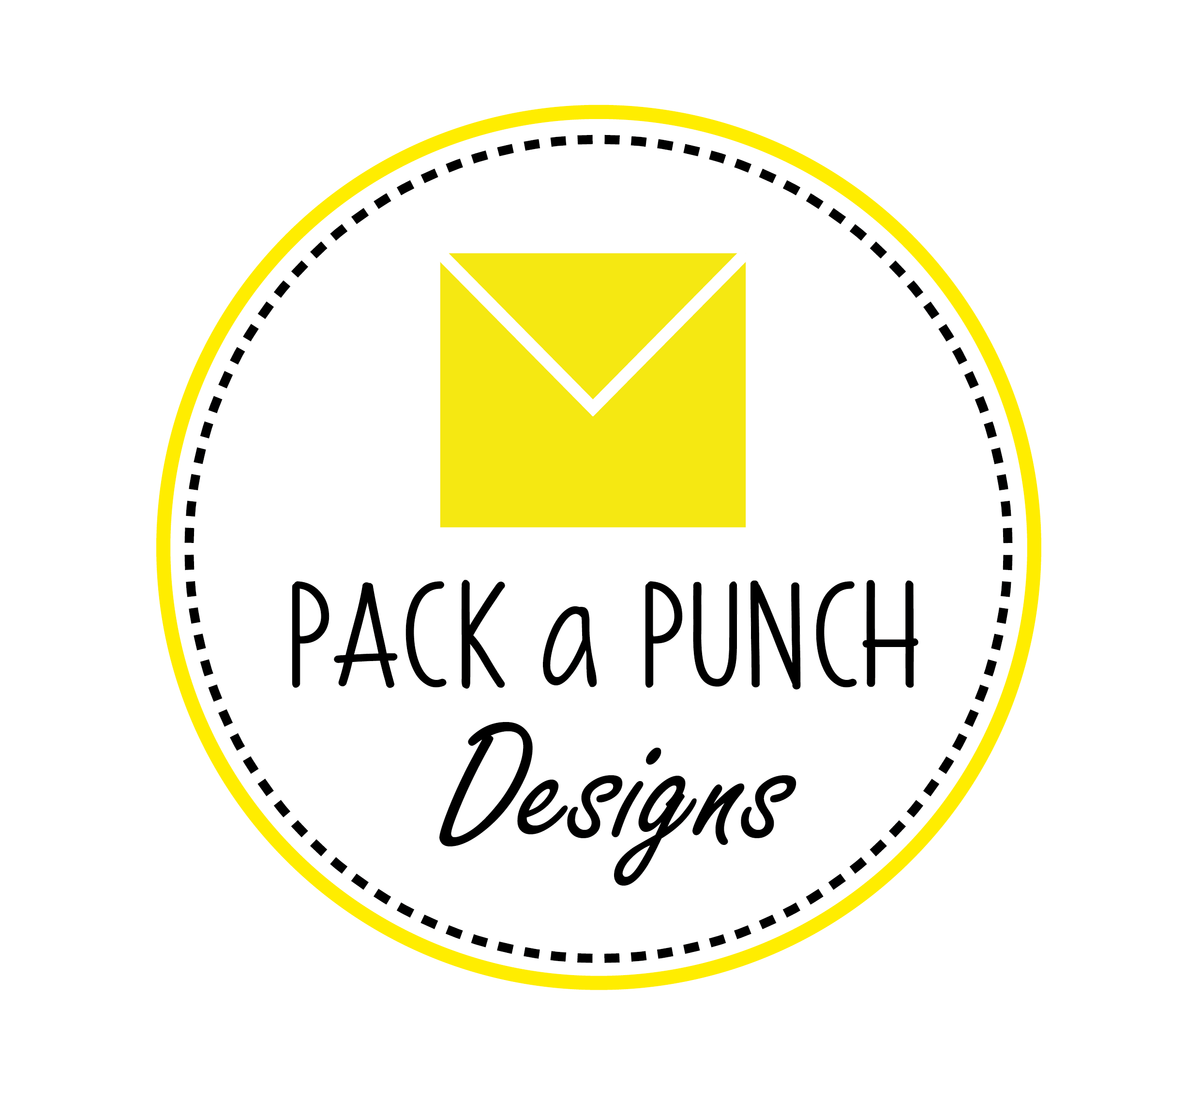 Pack a Punch Designs